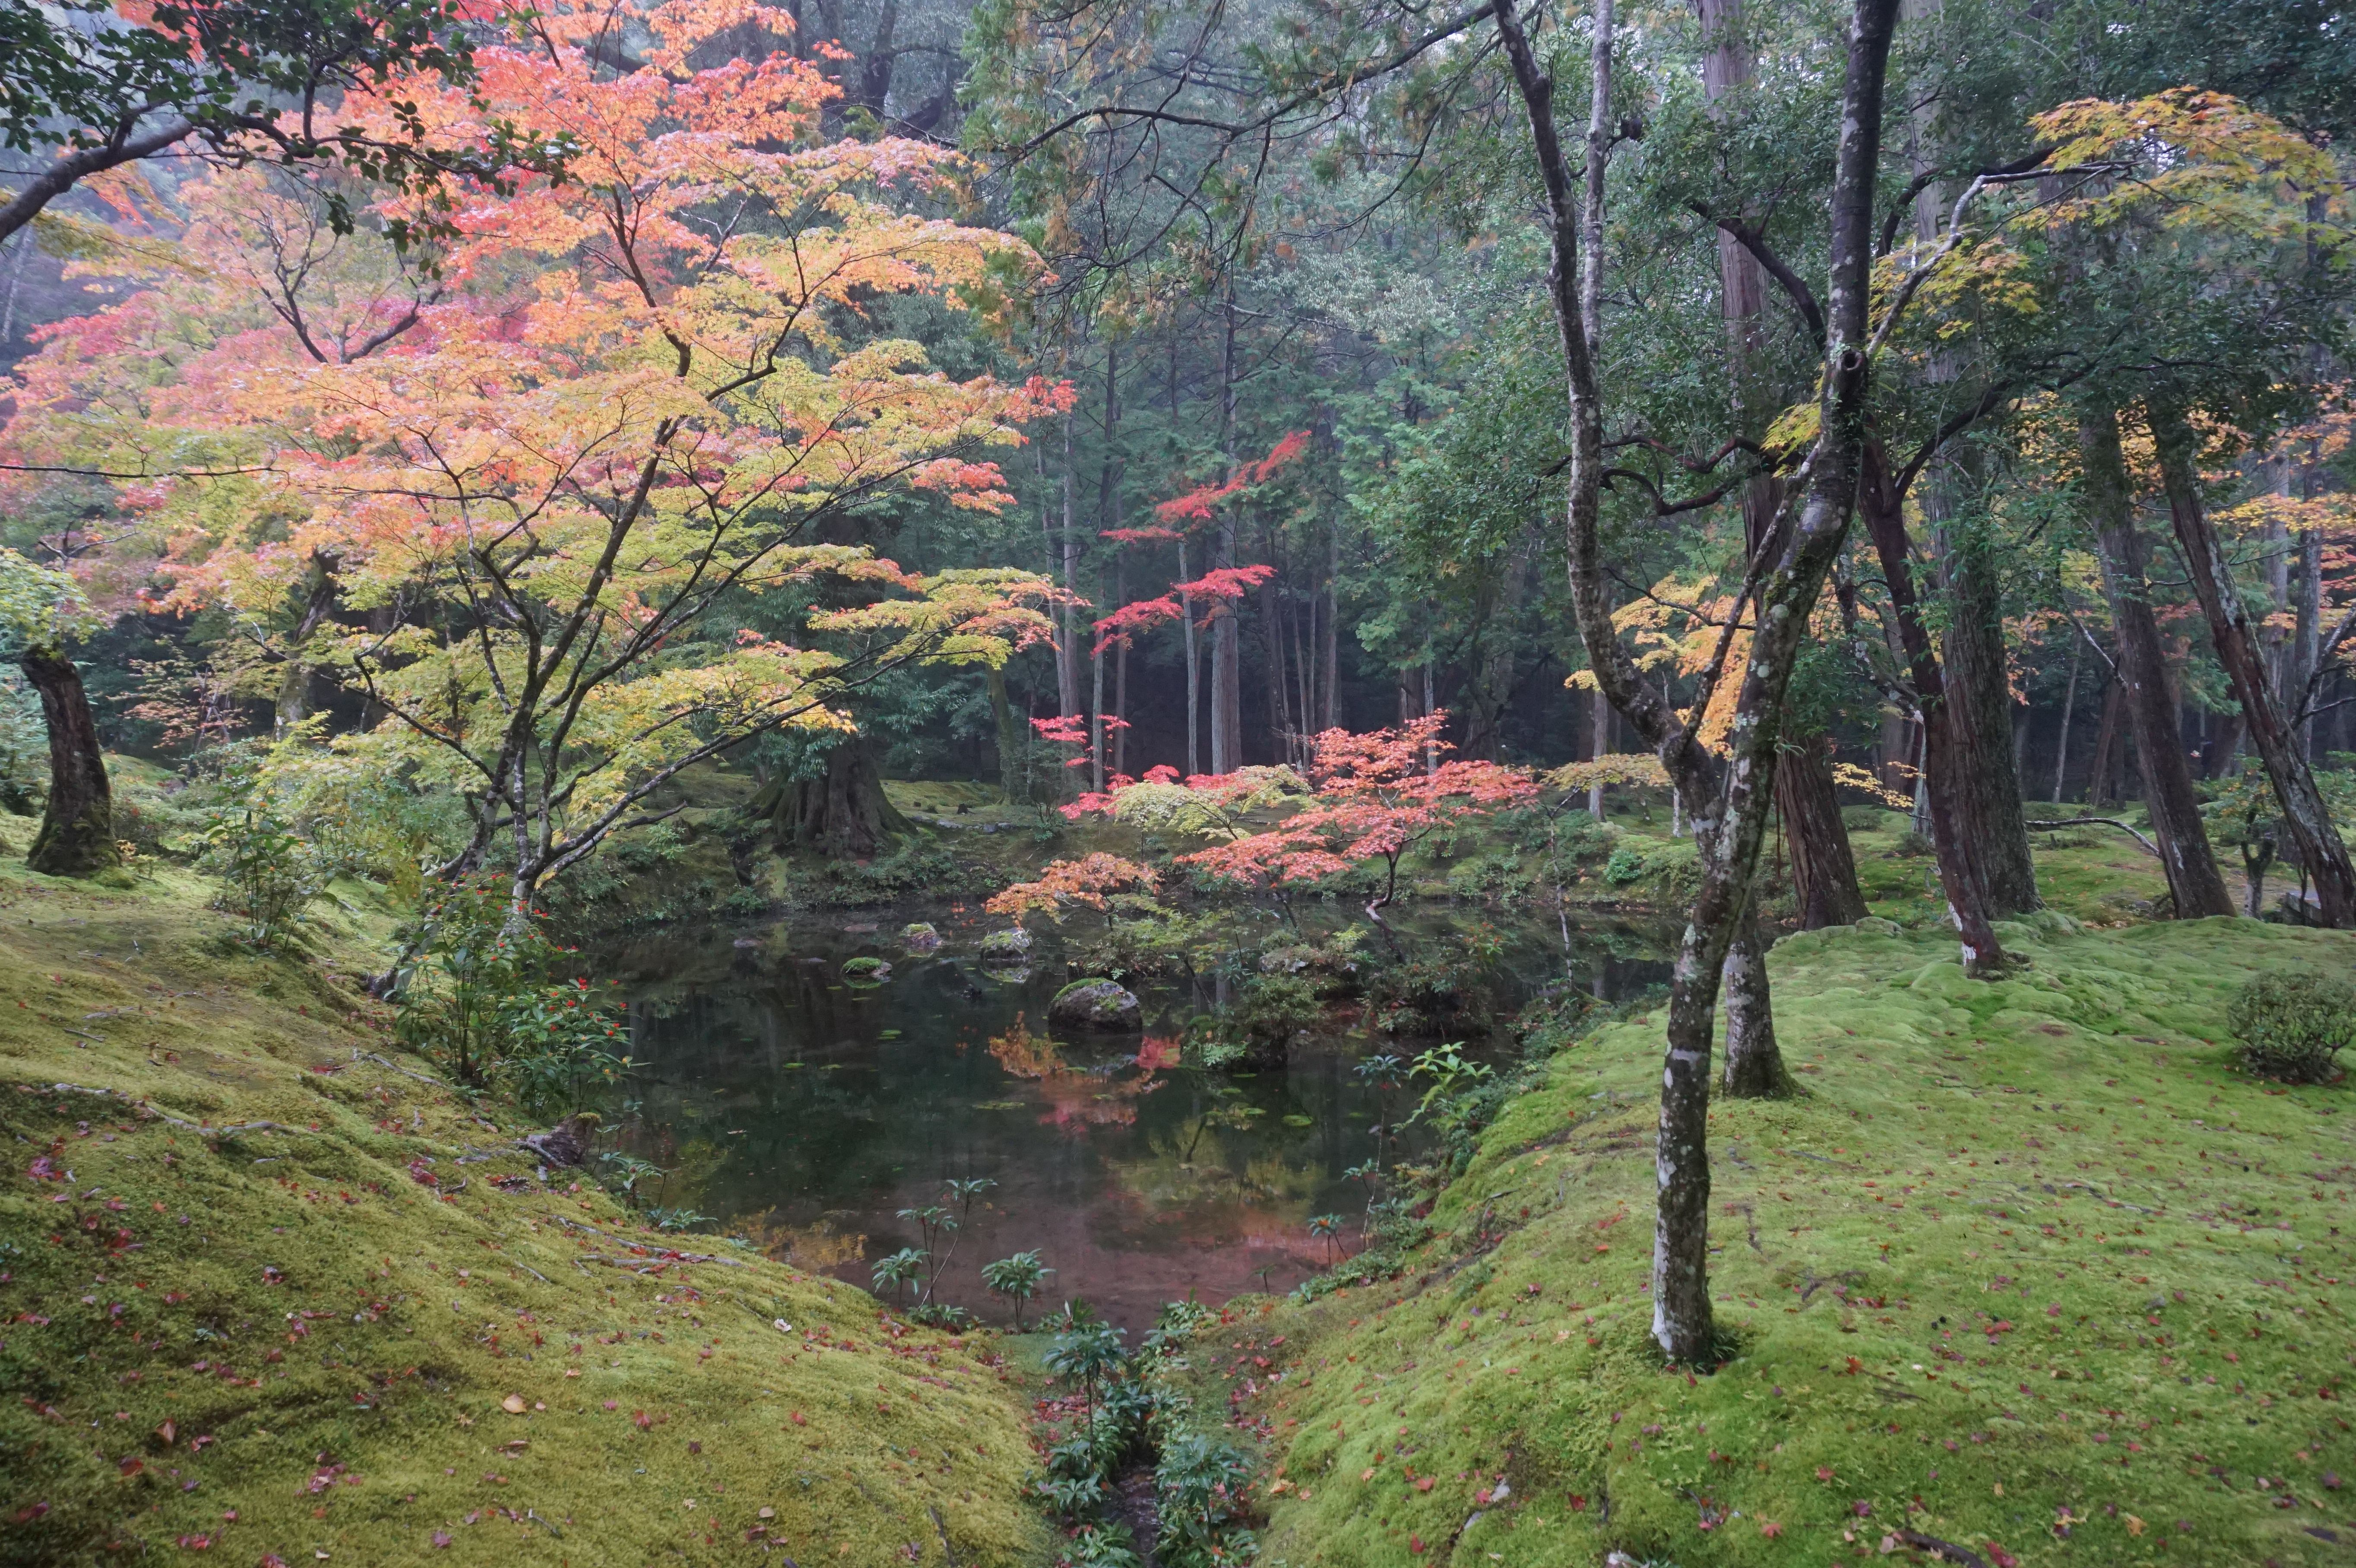 How To Get A Permit To Visit Kyoto Saihoji Kokedera Moss Temple